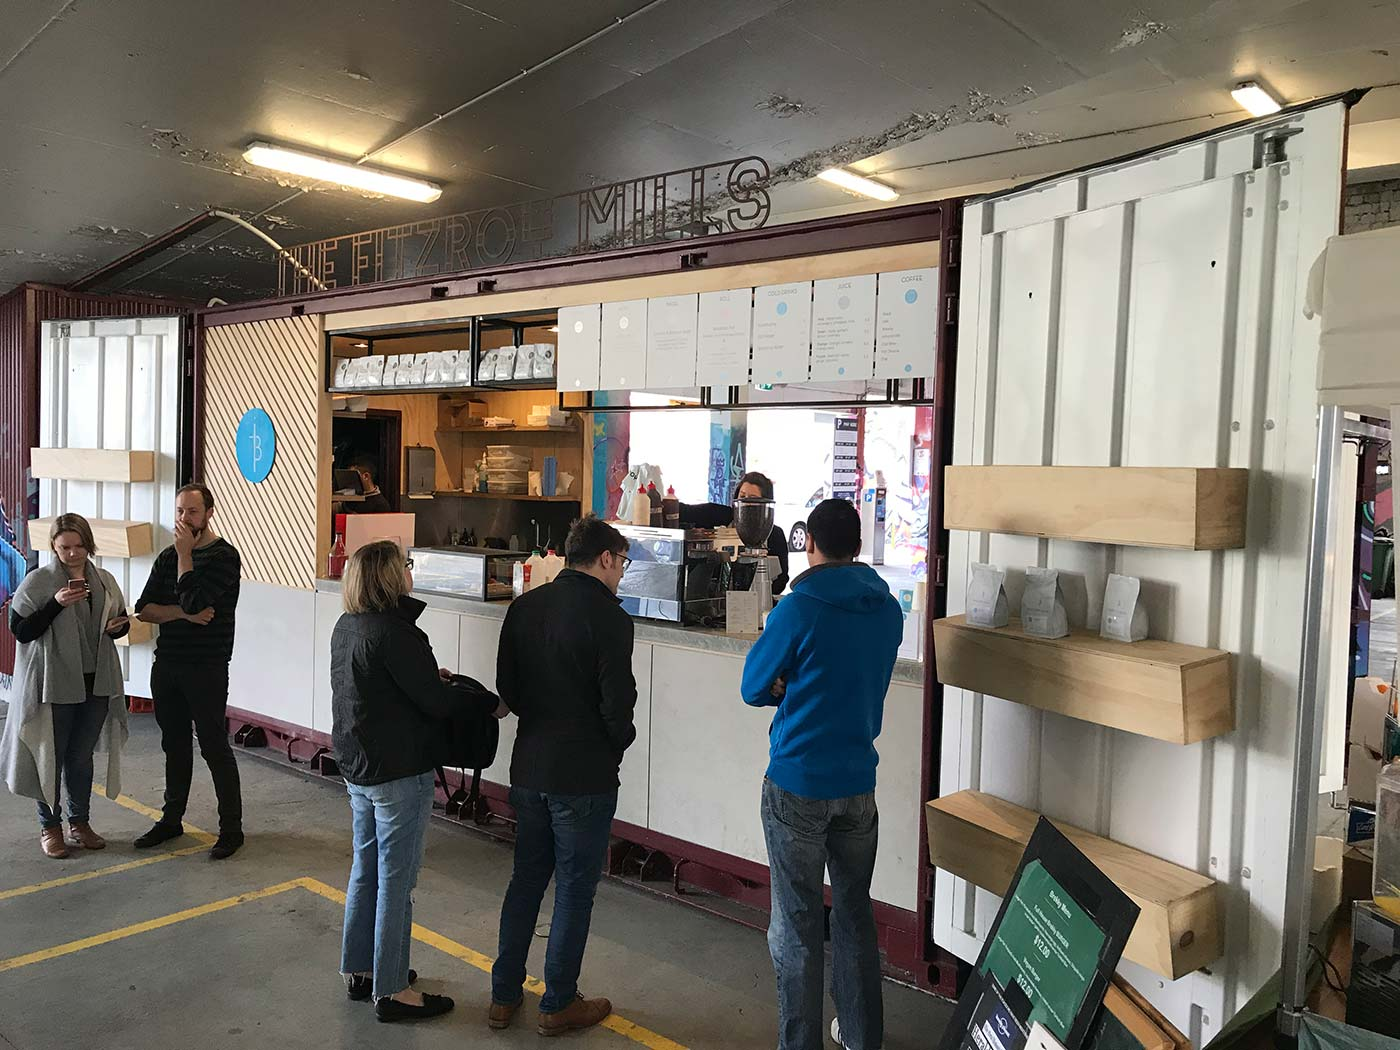 Fitzroy-Mills-Shipping-Container-Cafe-3